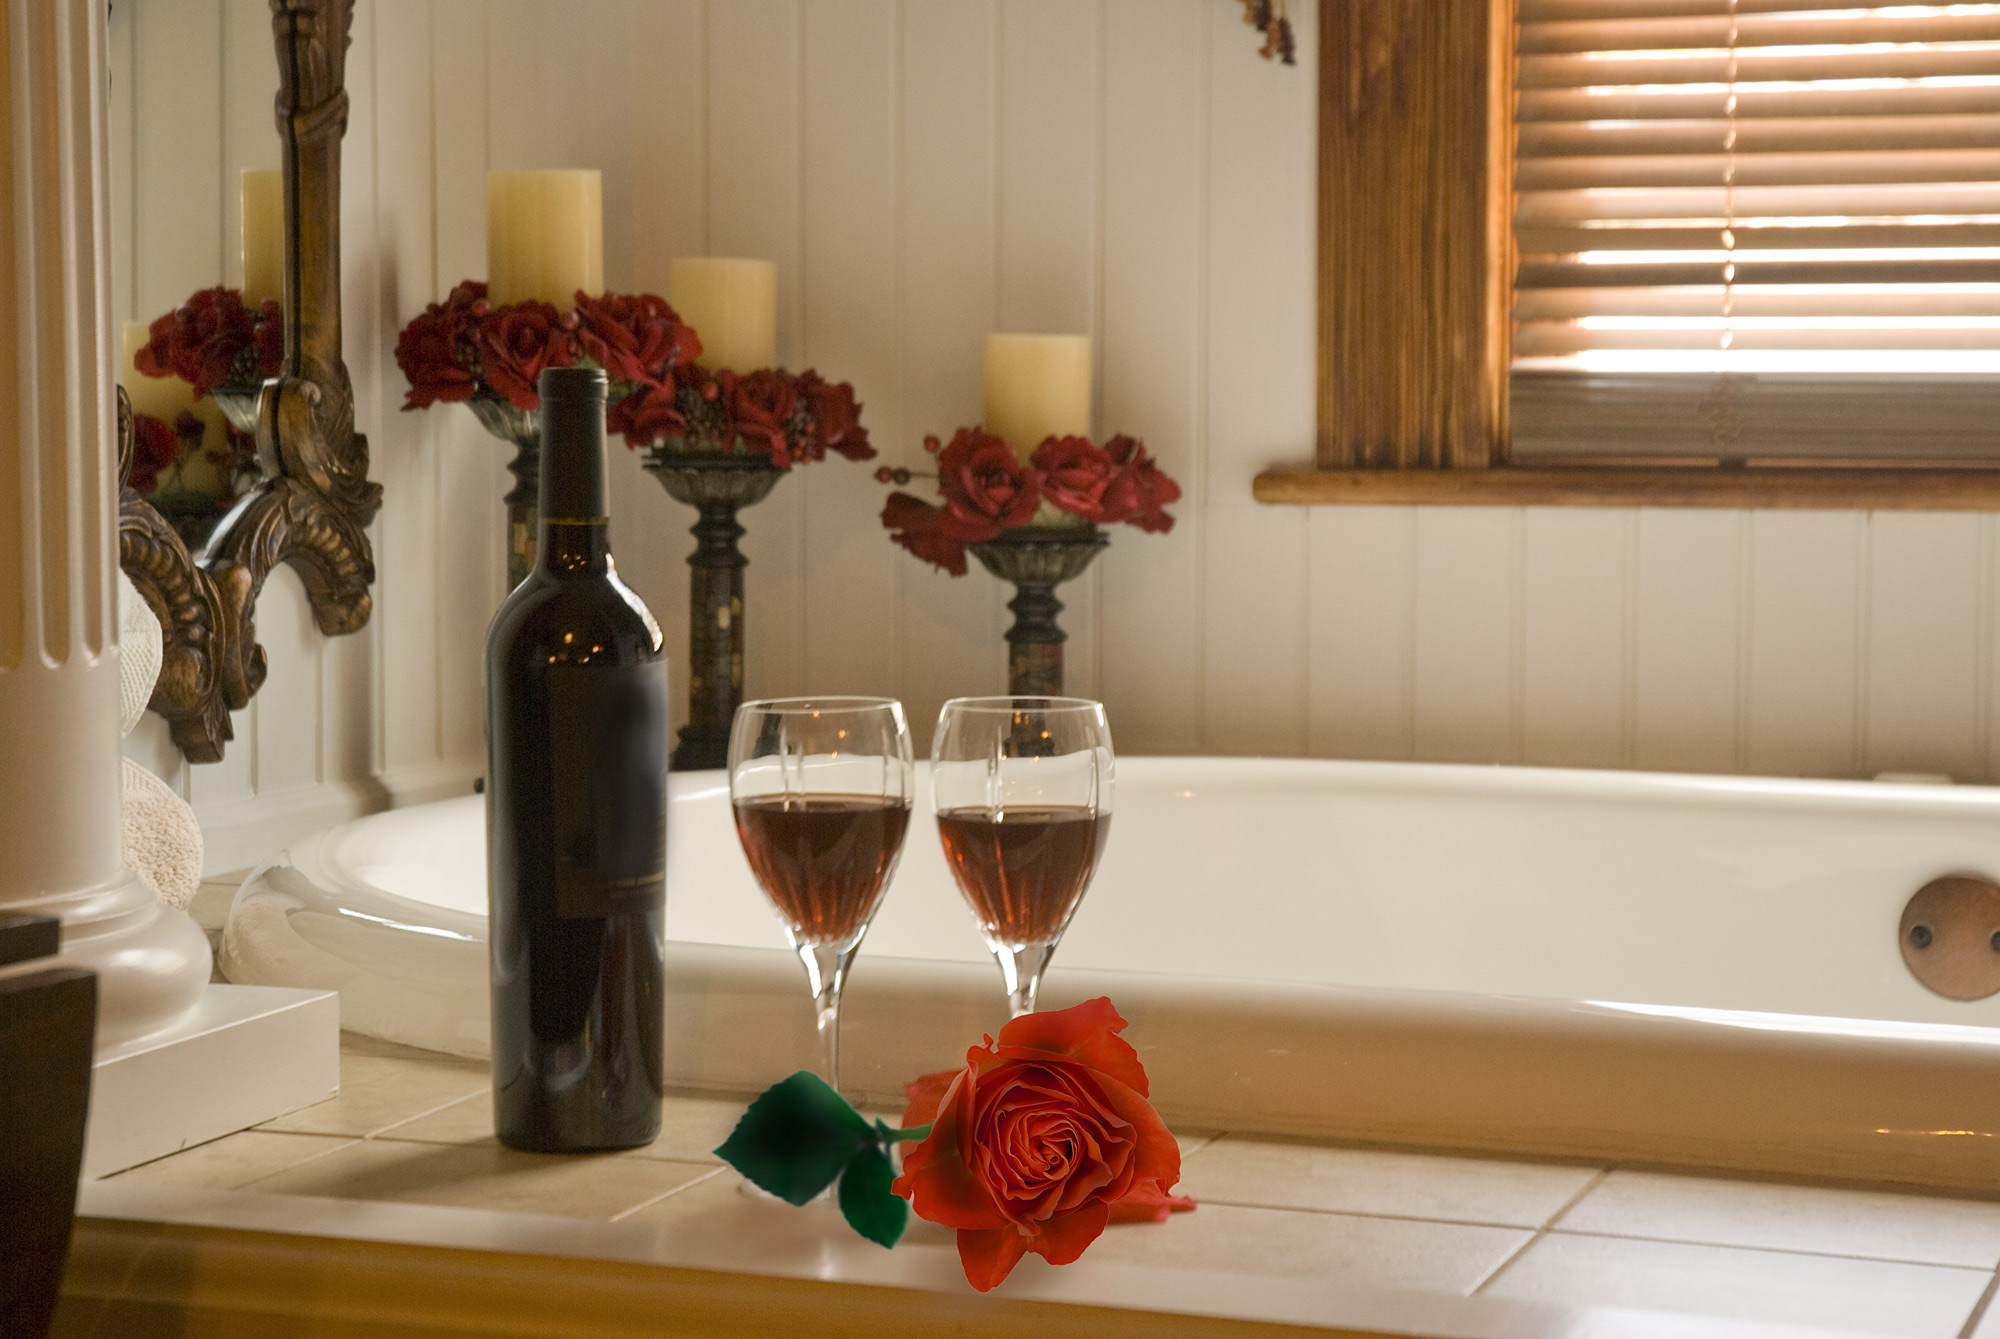 Pamper mum with a soothing bath for Mother's Day